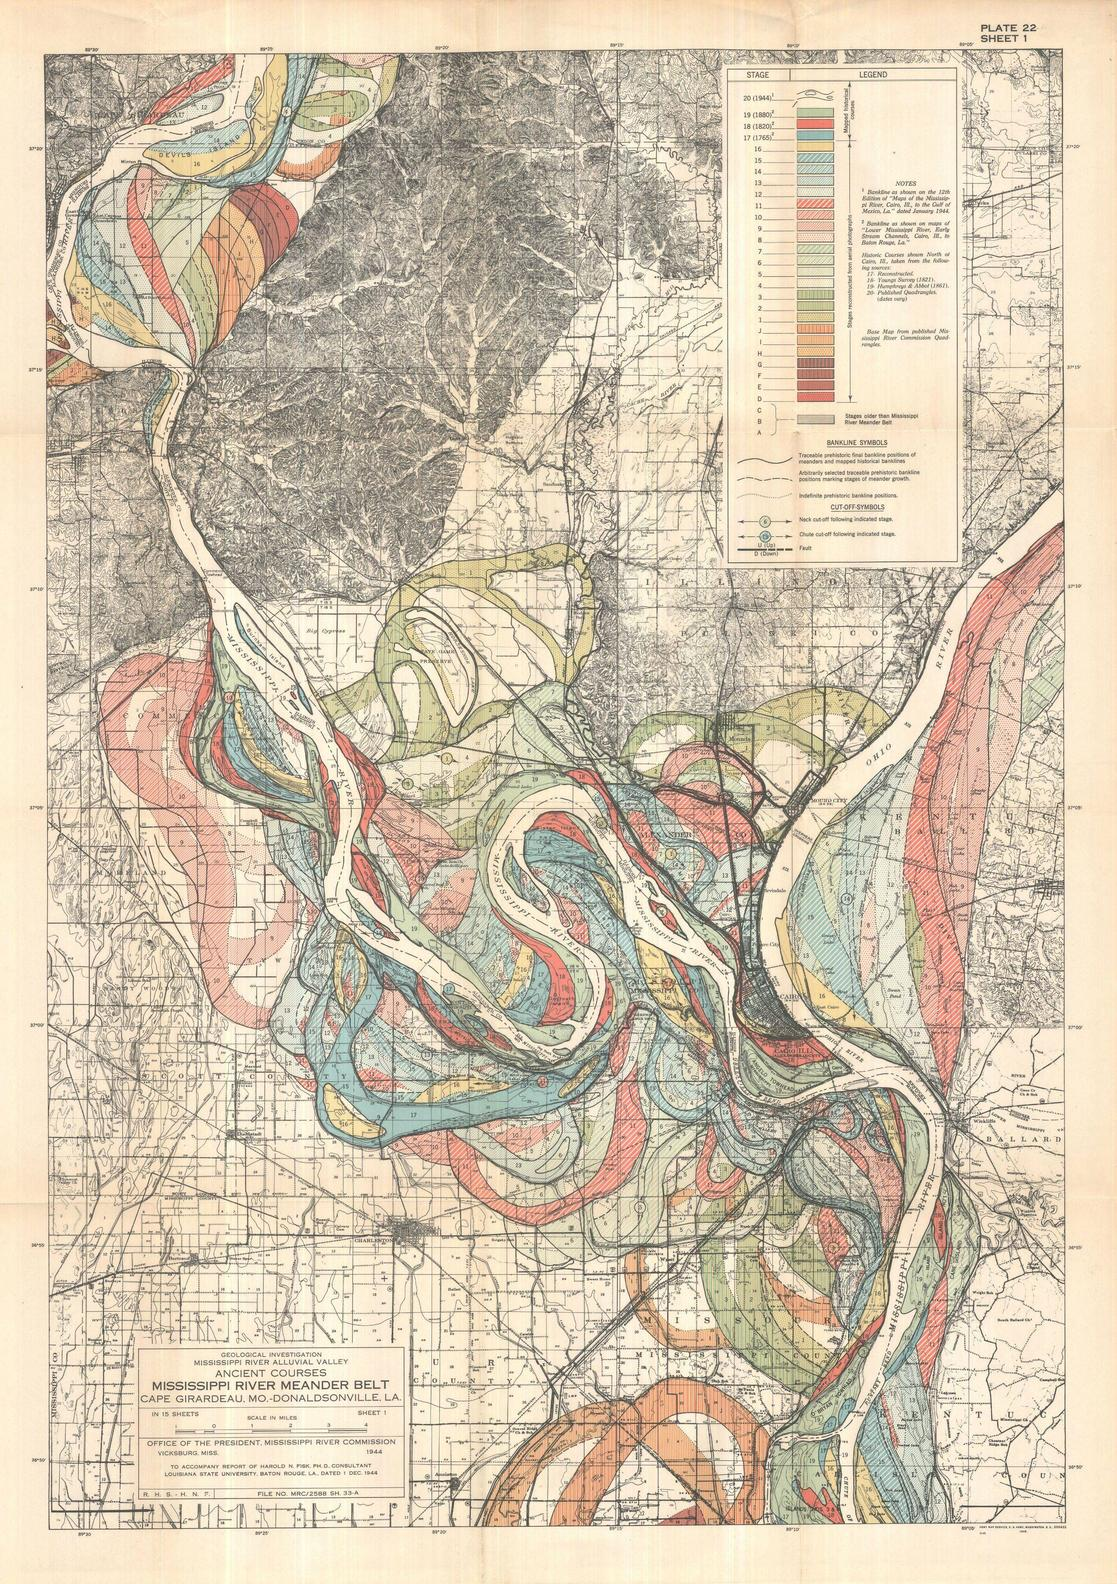 how-the-paths-of-the-mississippi-changed-in-the-past-4